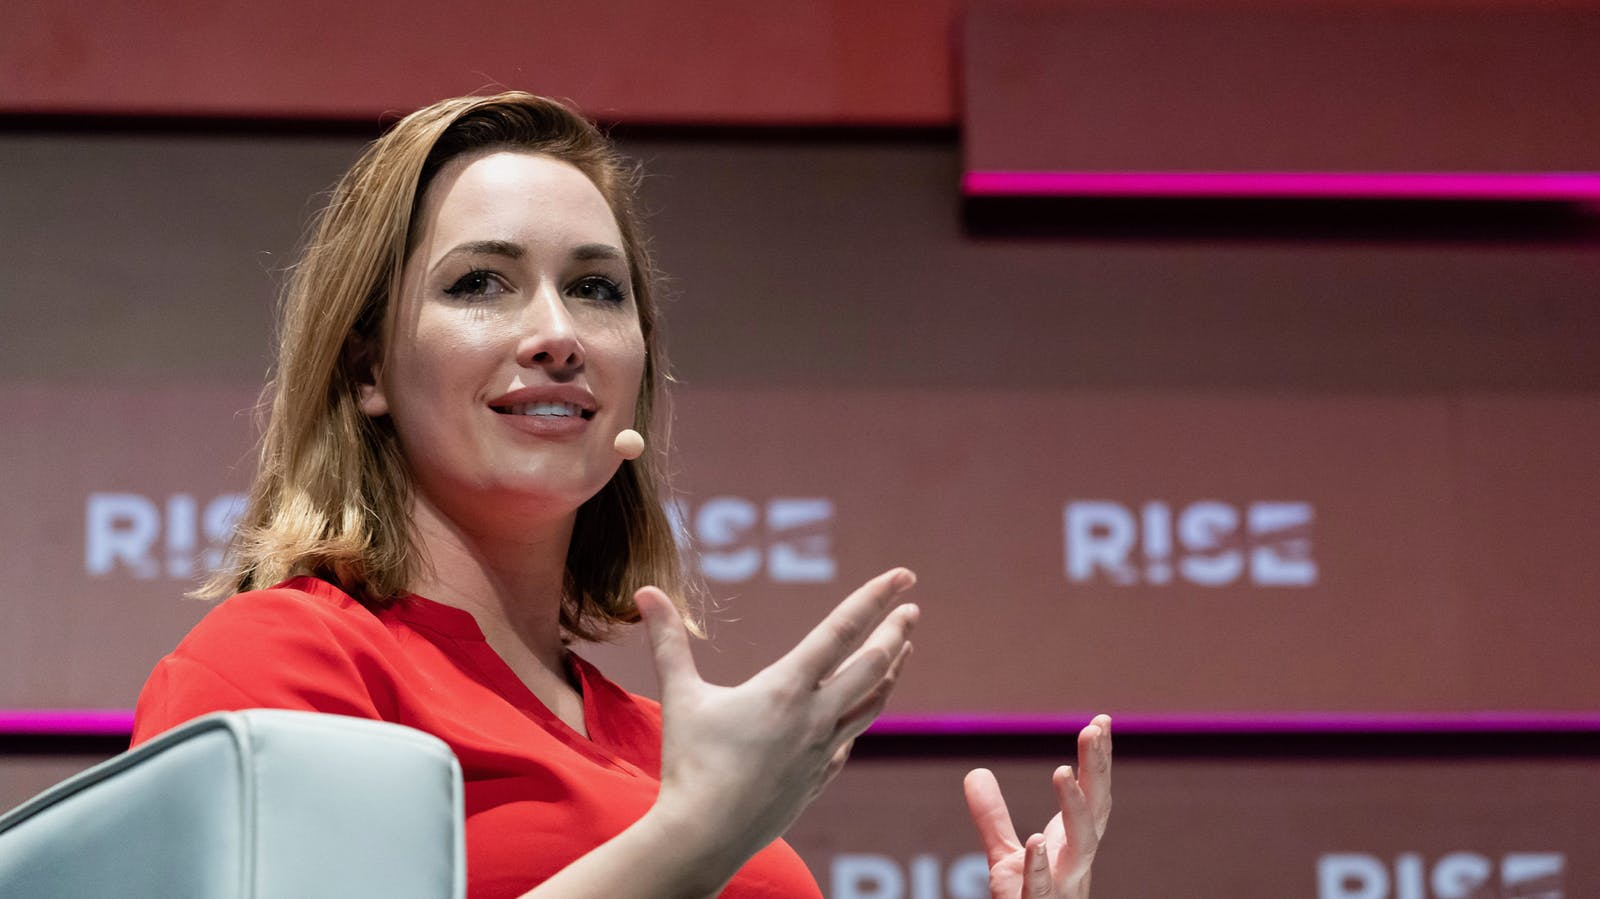 Carbon Robotics co-founder and CEO Rosanna Myers at a conference in Hong Kong last year. Photo by Bloomberg.